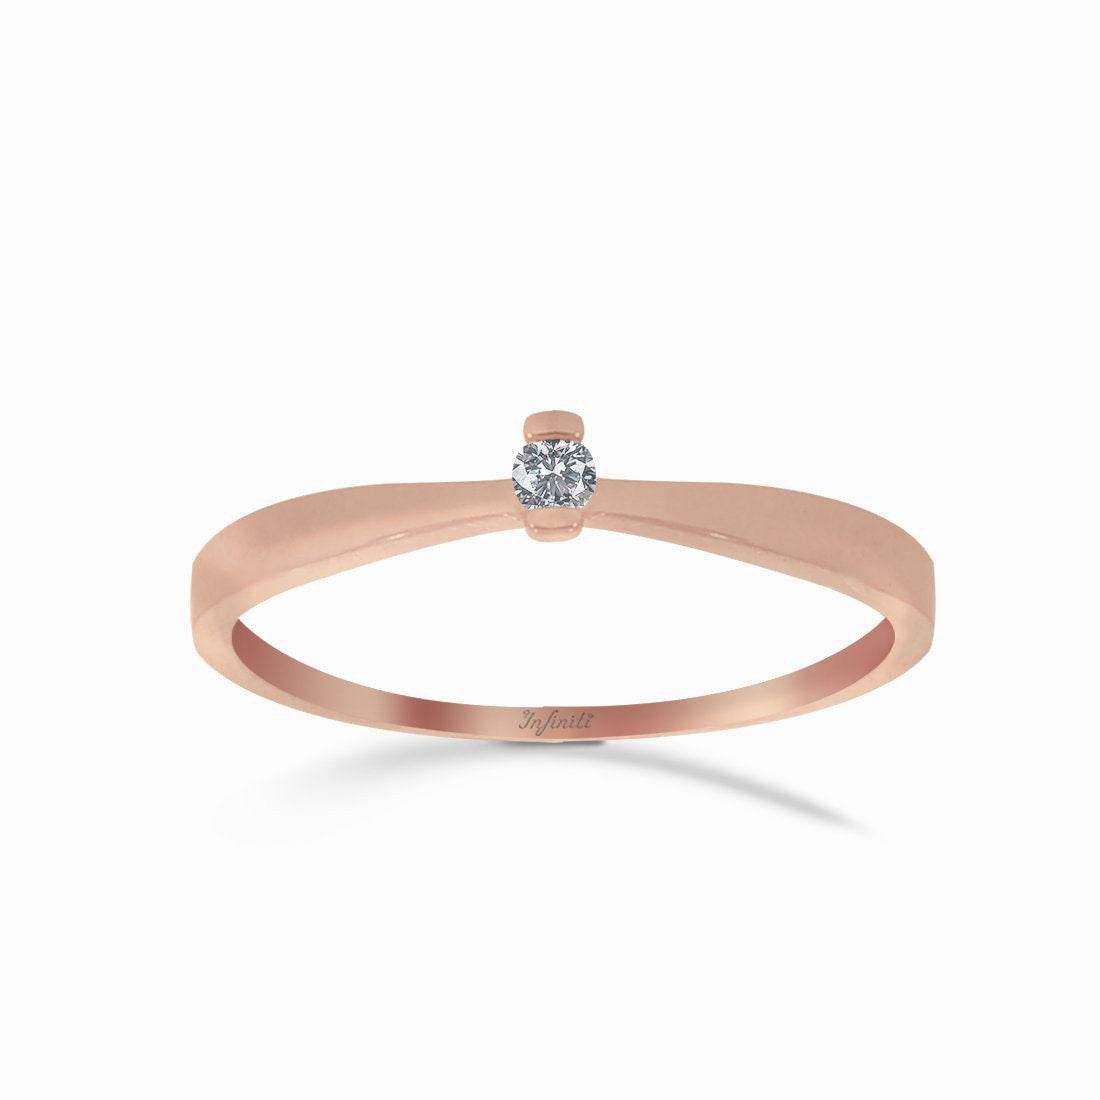 Anillo Solitario Oro Rosa 14k, Diamante Natural de 4 Puntos